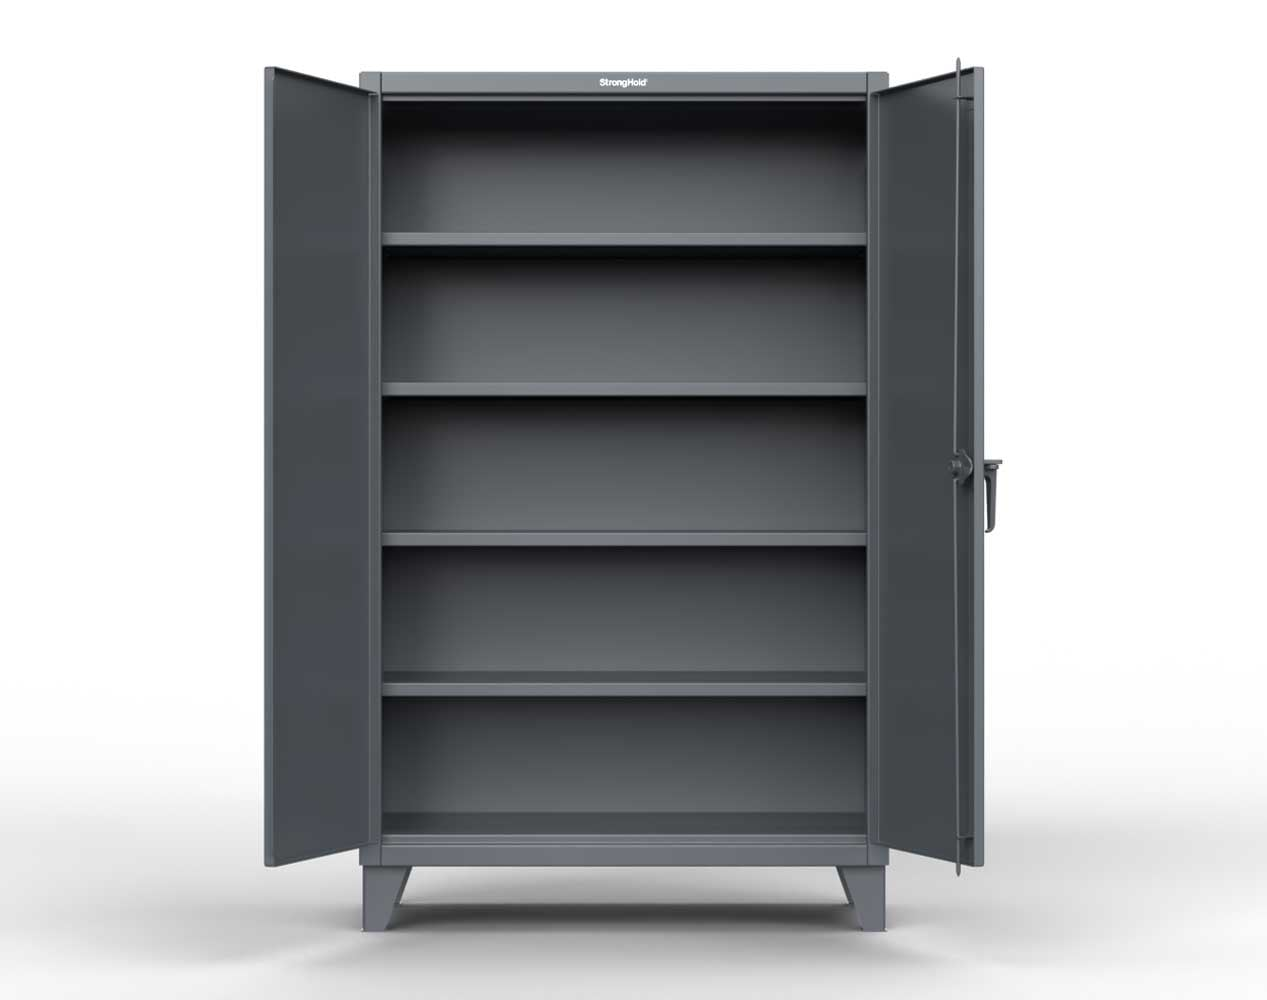 Extra Heavy Duty 12 GA Cabinet with 3 Extra Deep Shelves – 36 In. W x 36 In. D x 66 In. H